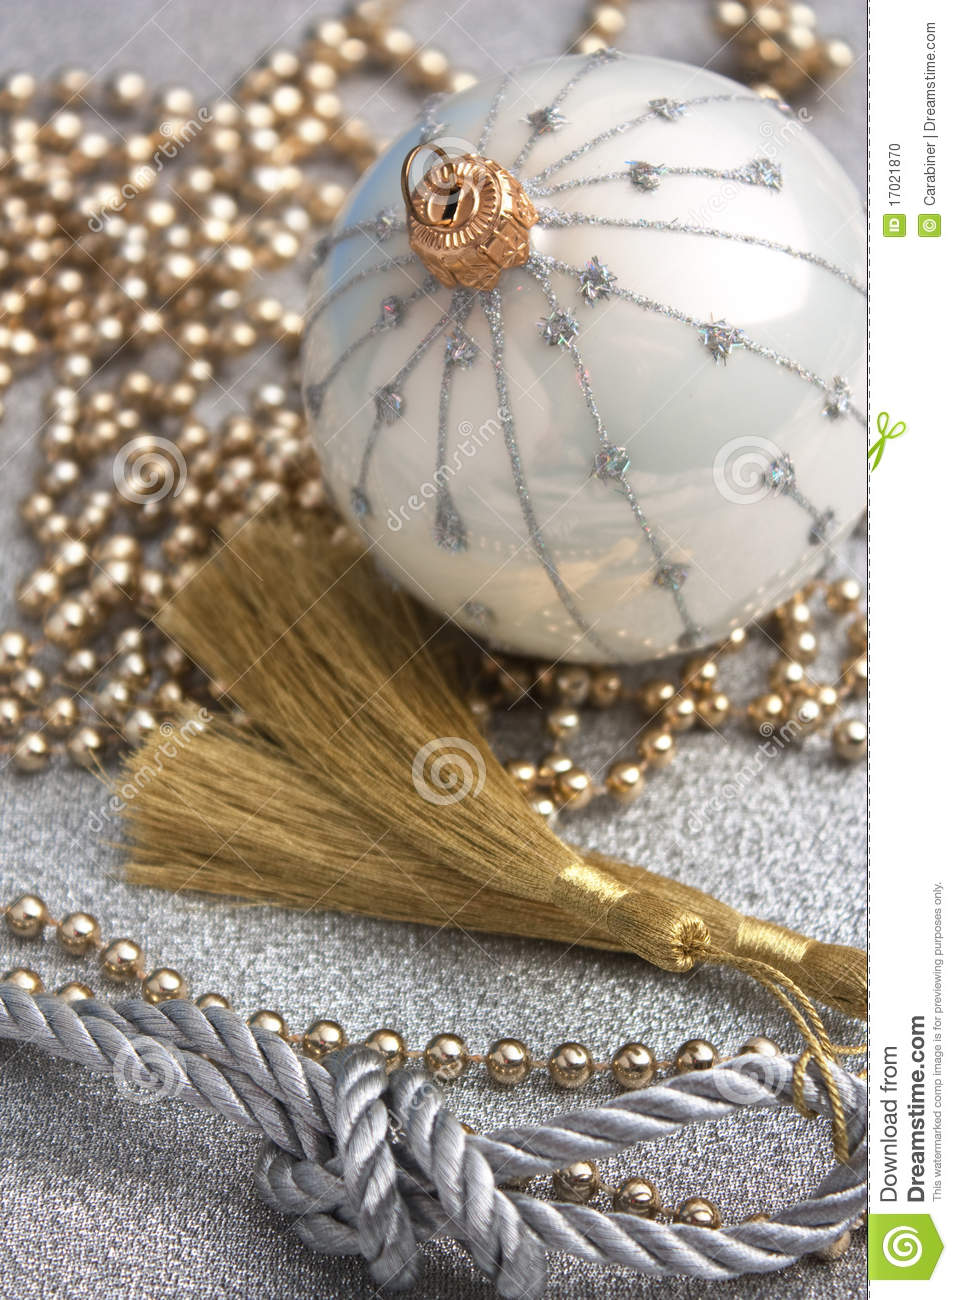 Decorazione di natale fotografia stock immagine di bauble for Decorazione be u